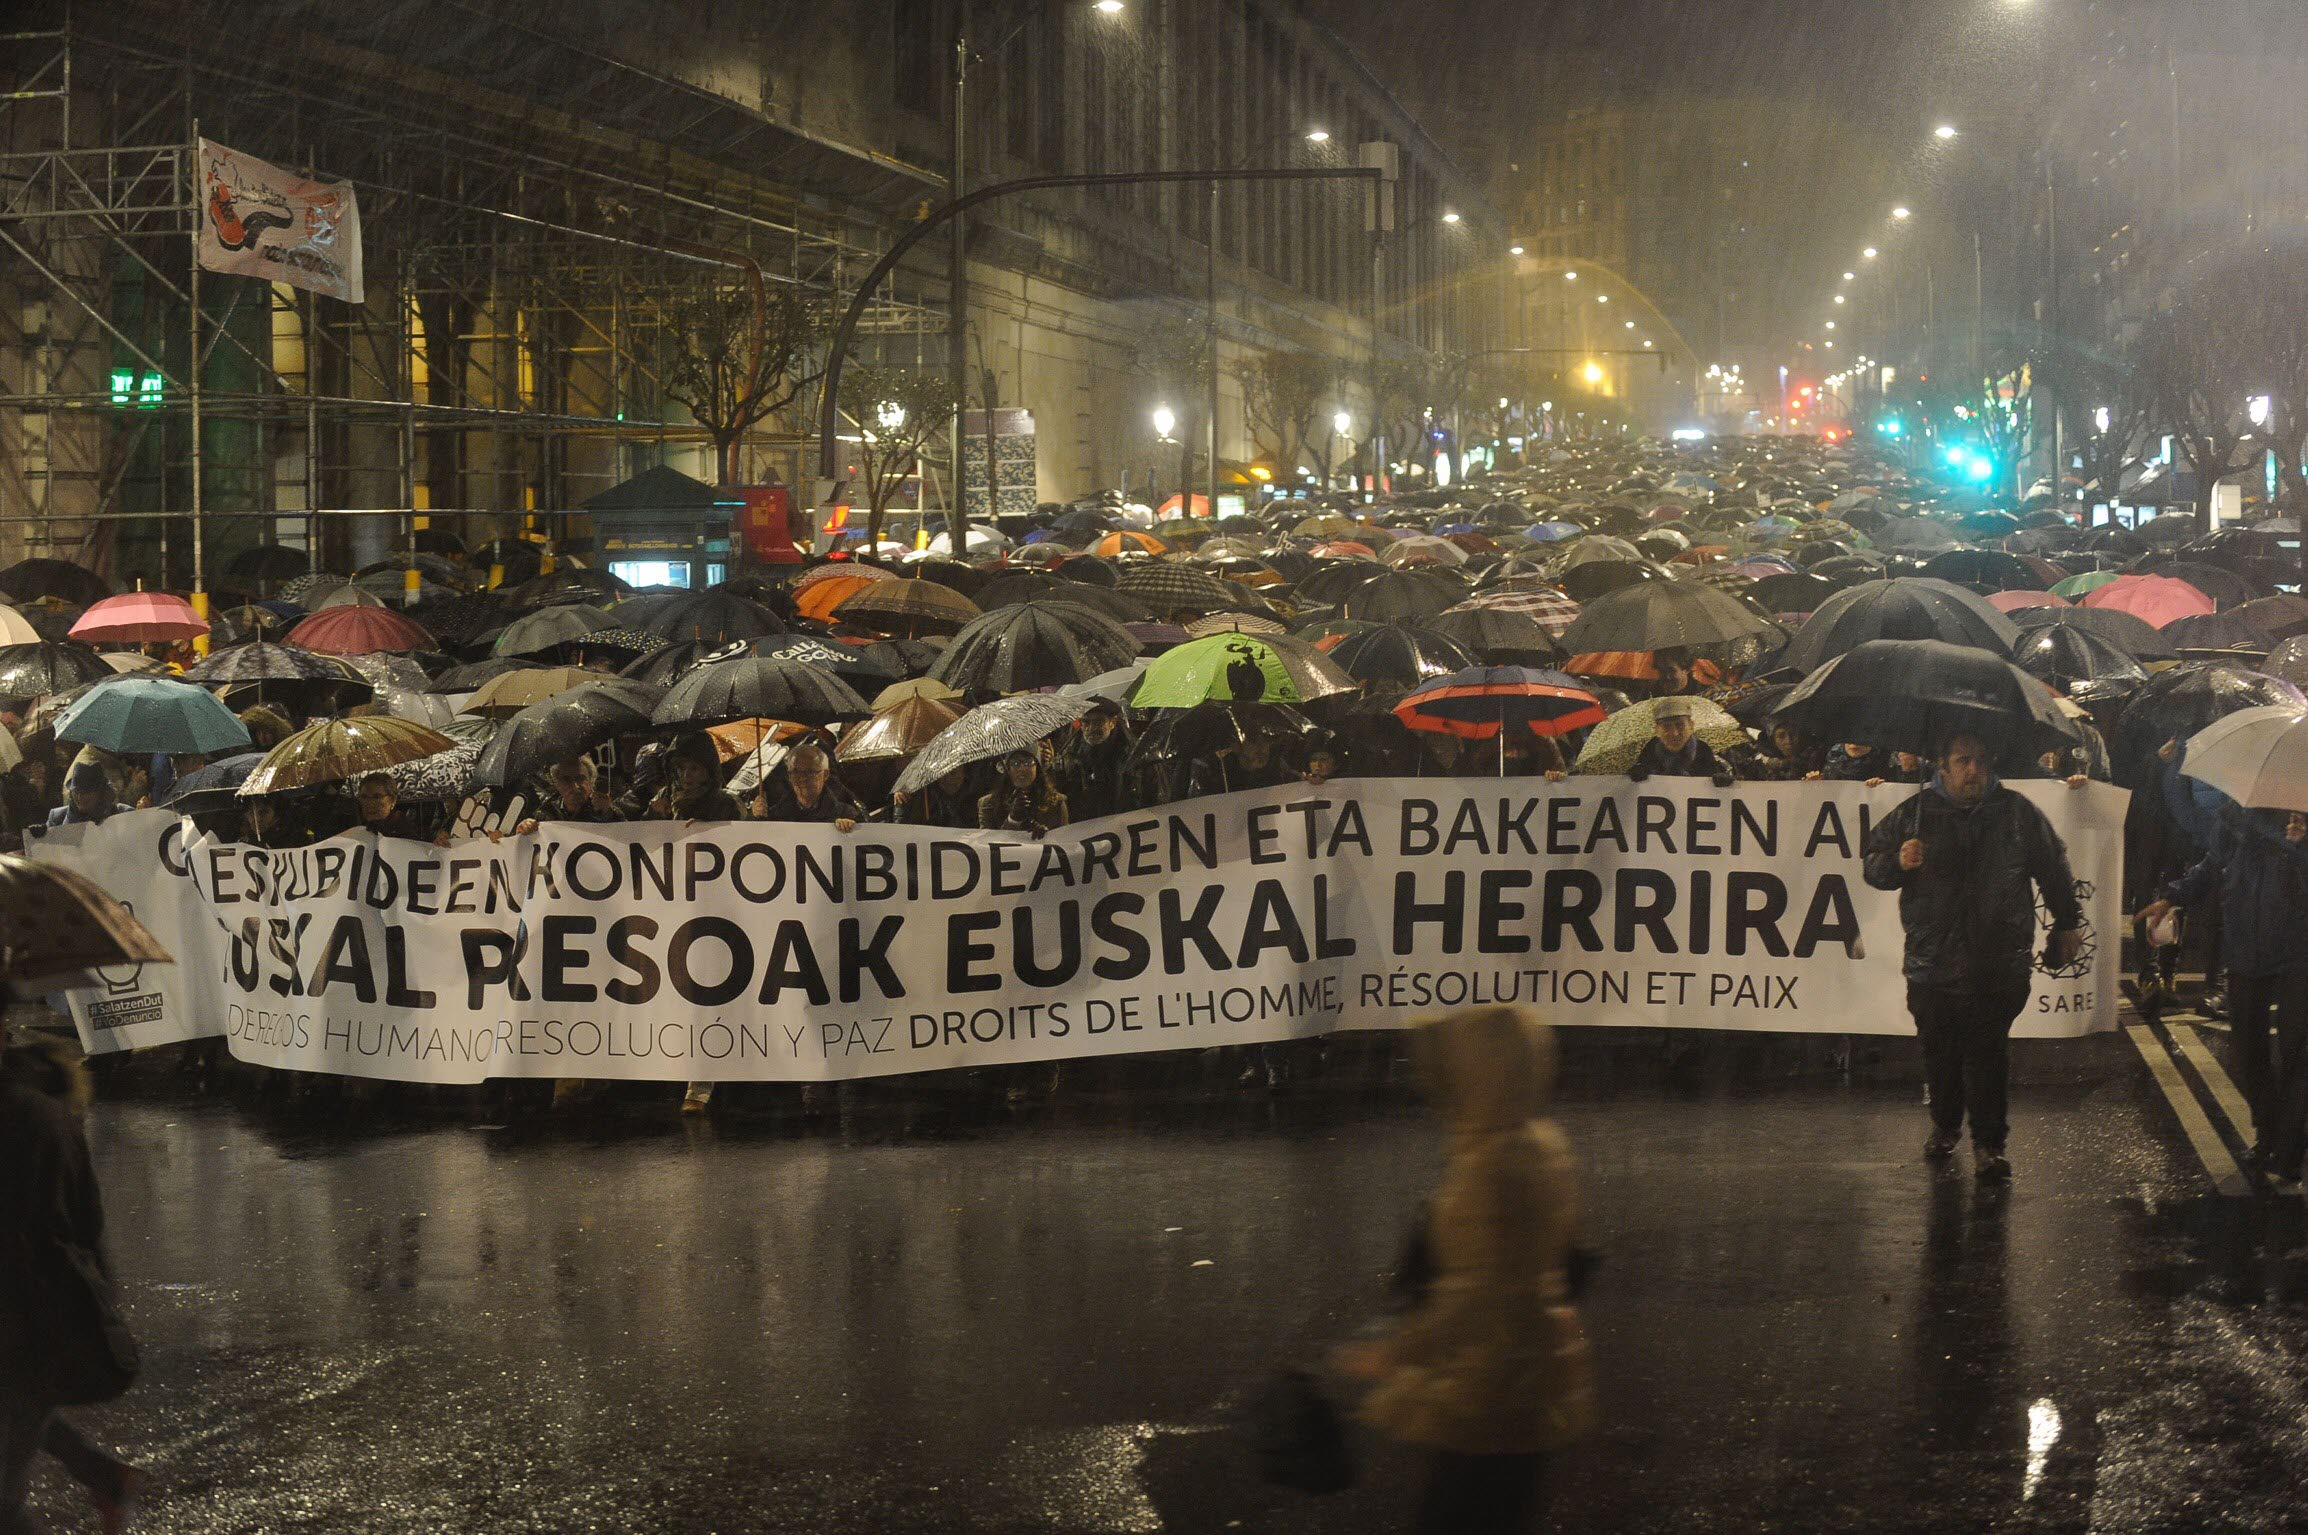 January 2017. Demonstration in Bilbao for prisoners' rights. Photo: El Diario Vasco Newspaper